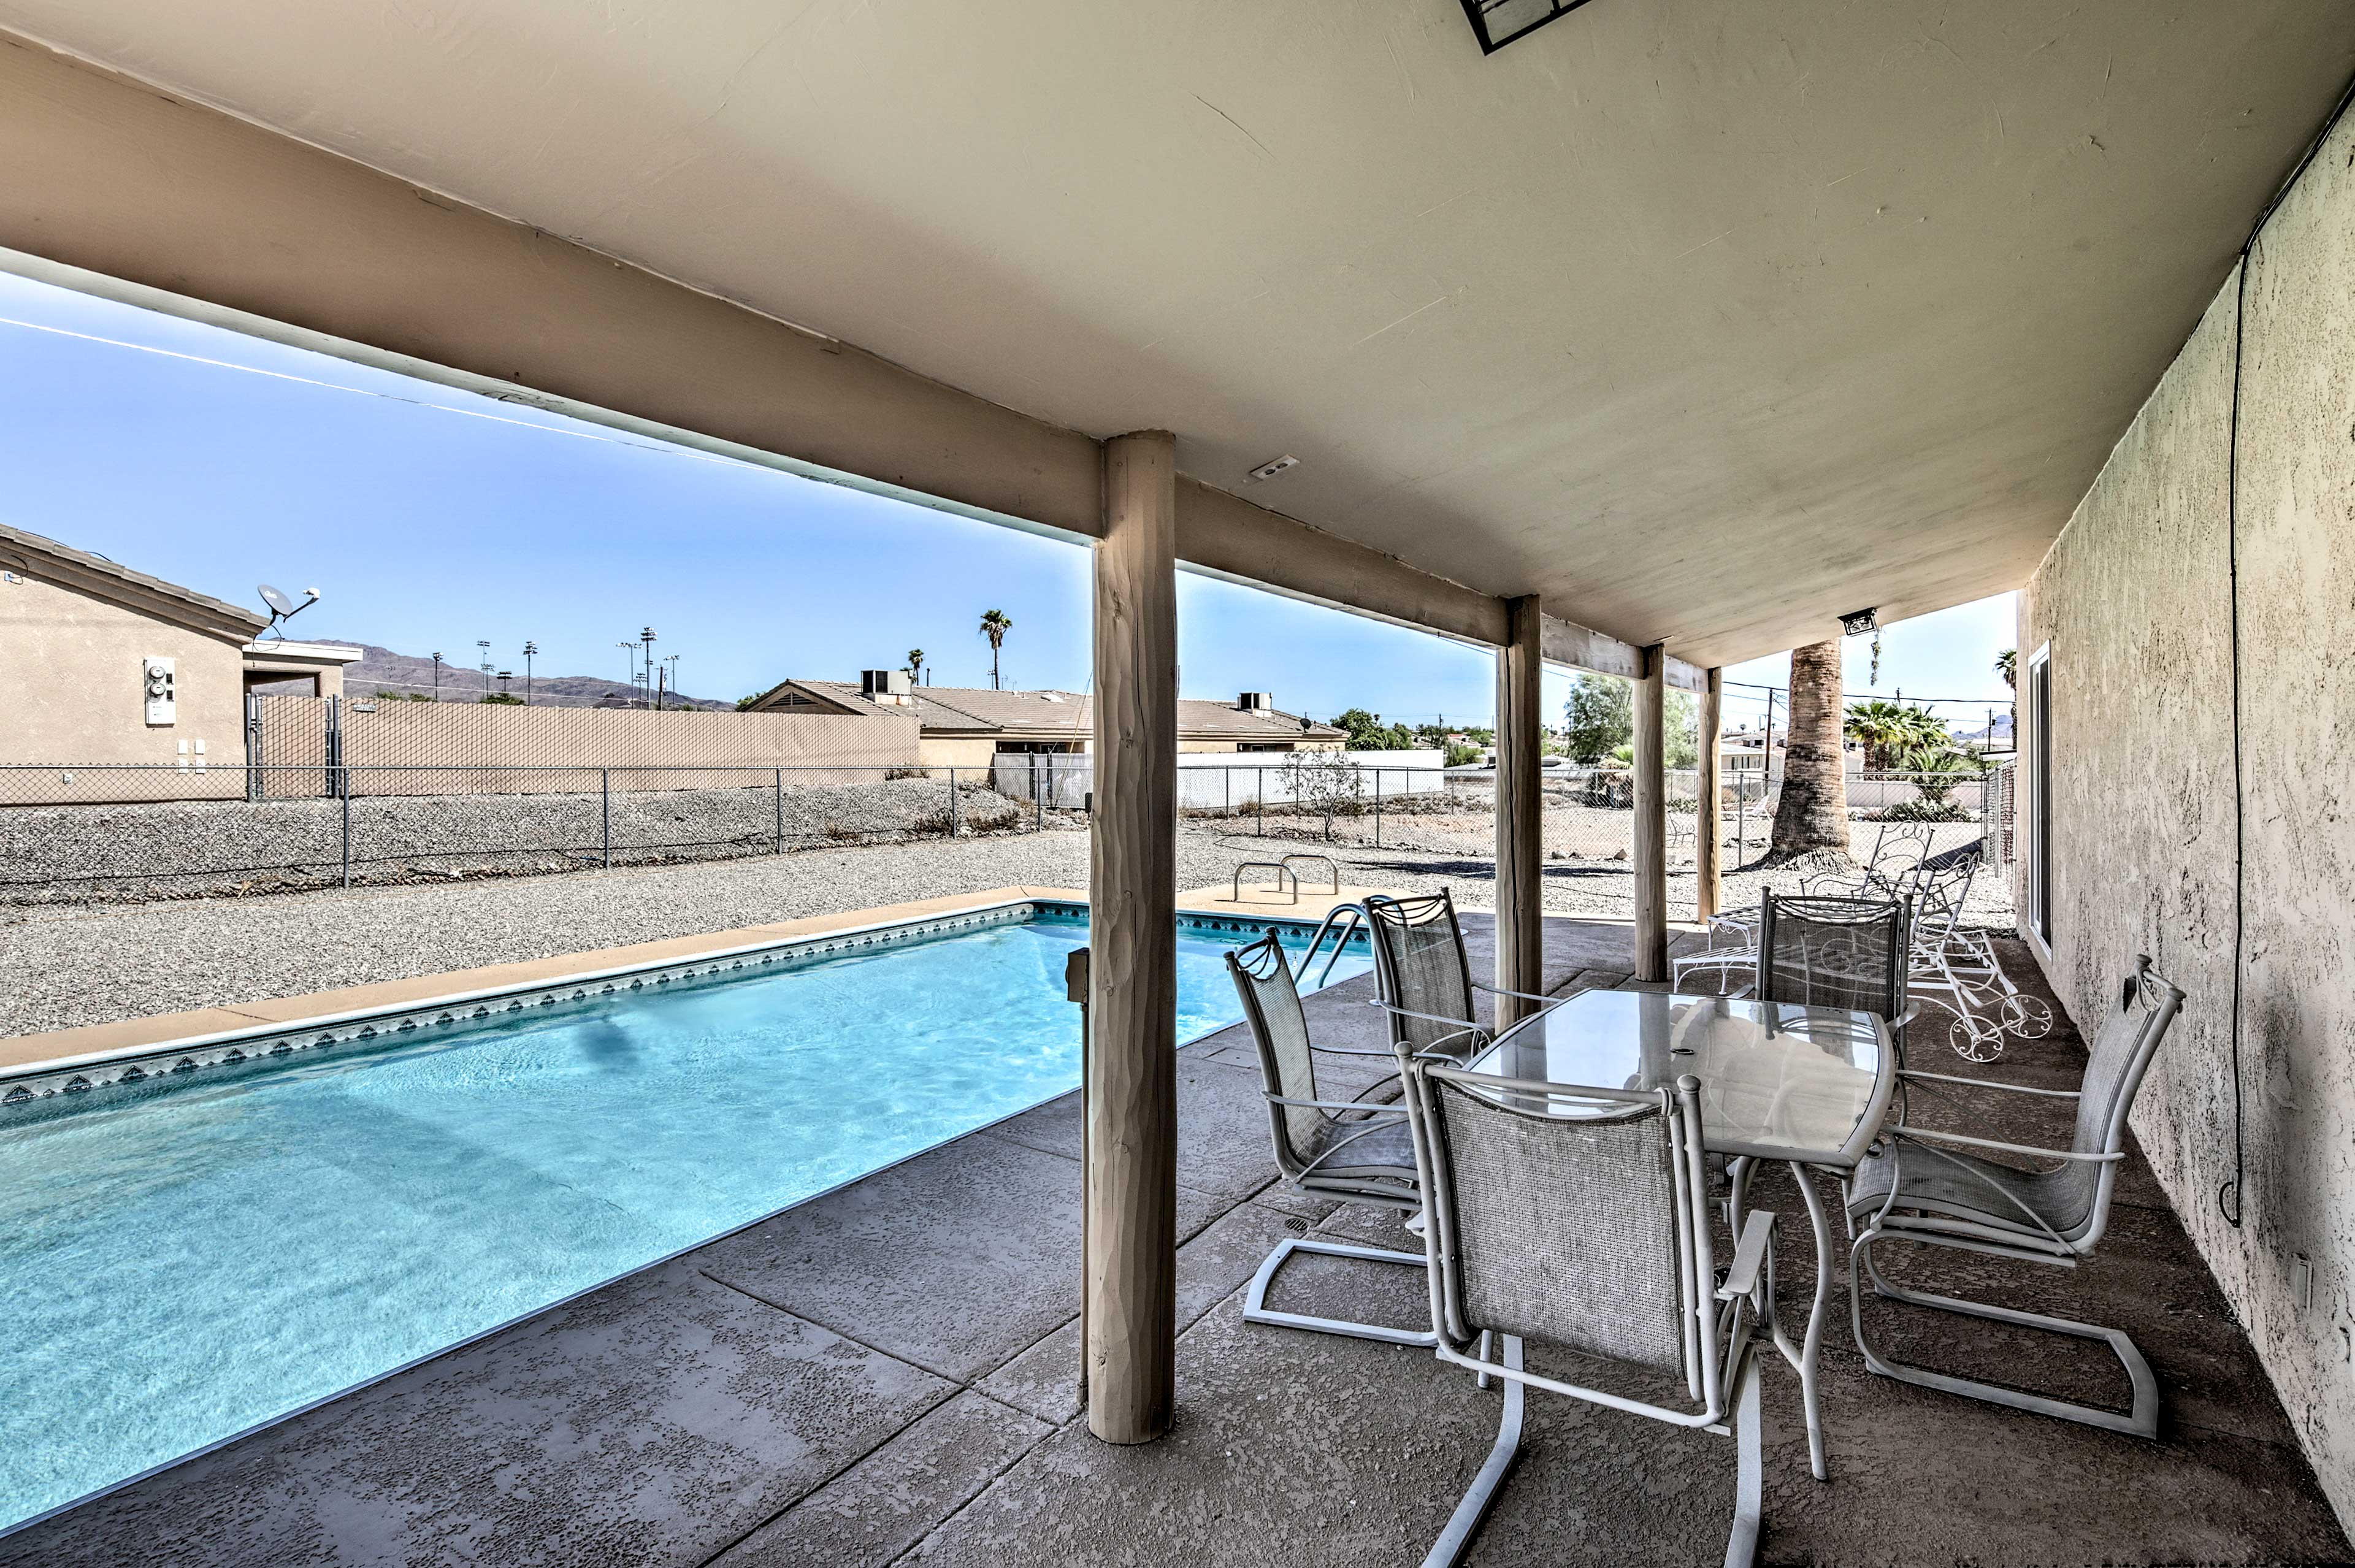 This house boasts a private pool and plenty of backyard space!